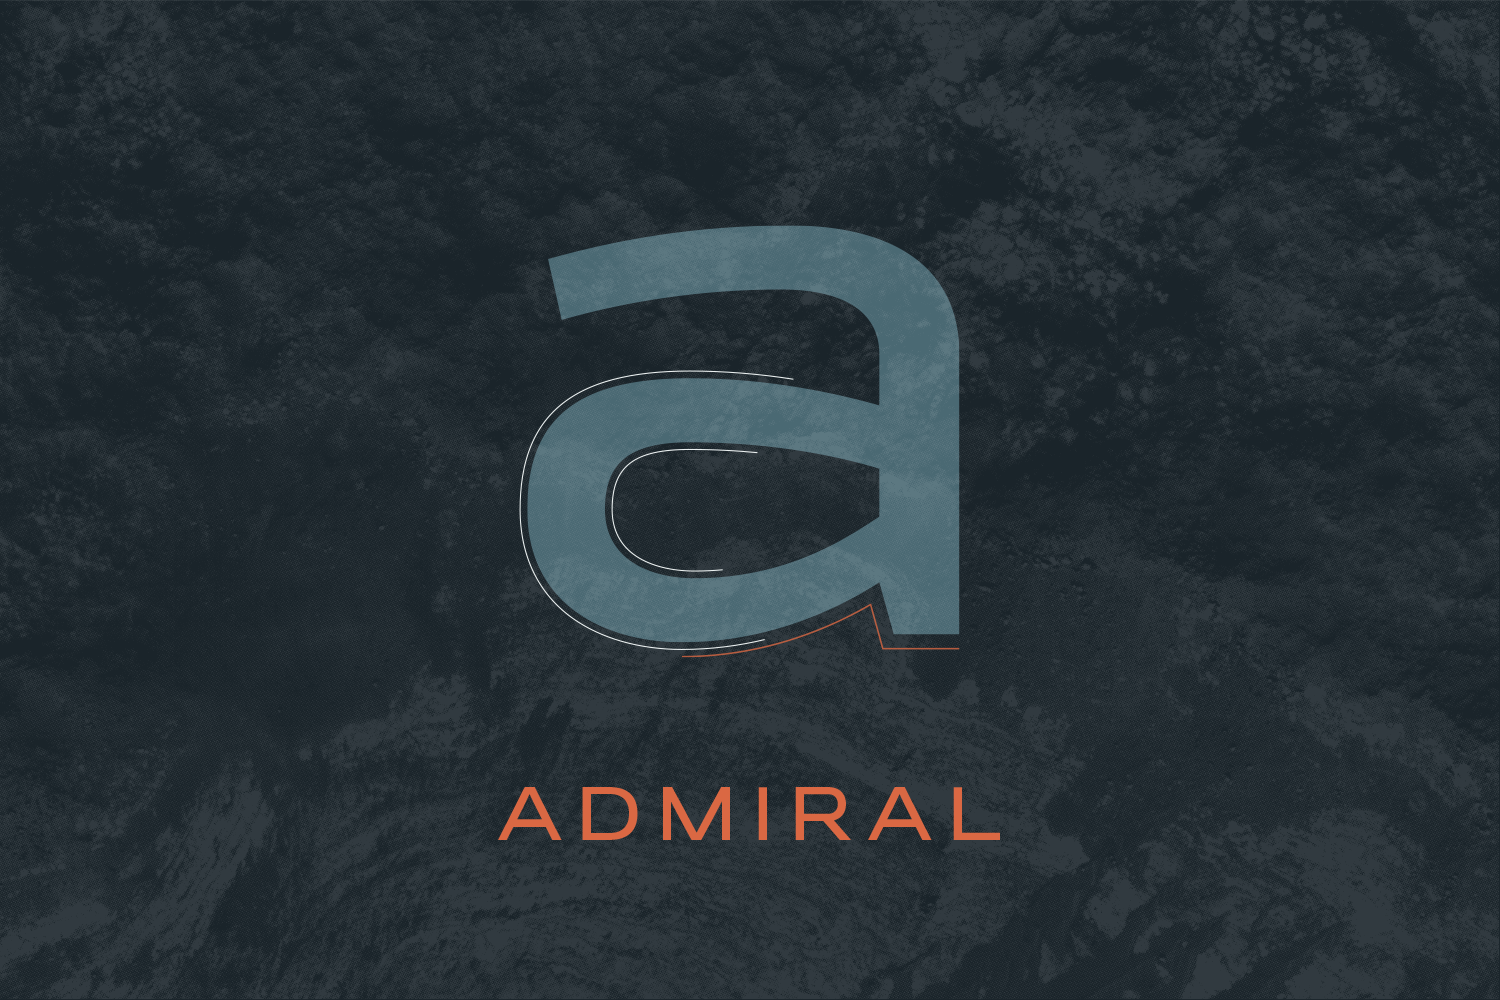 admiral_cover.png